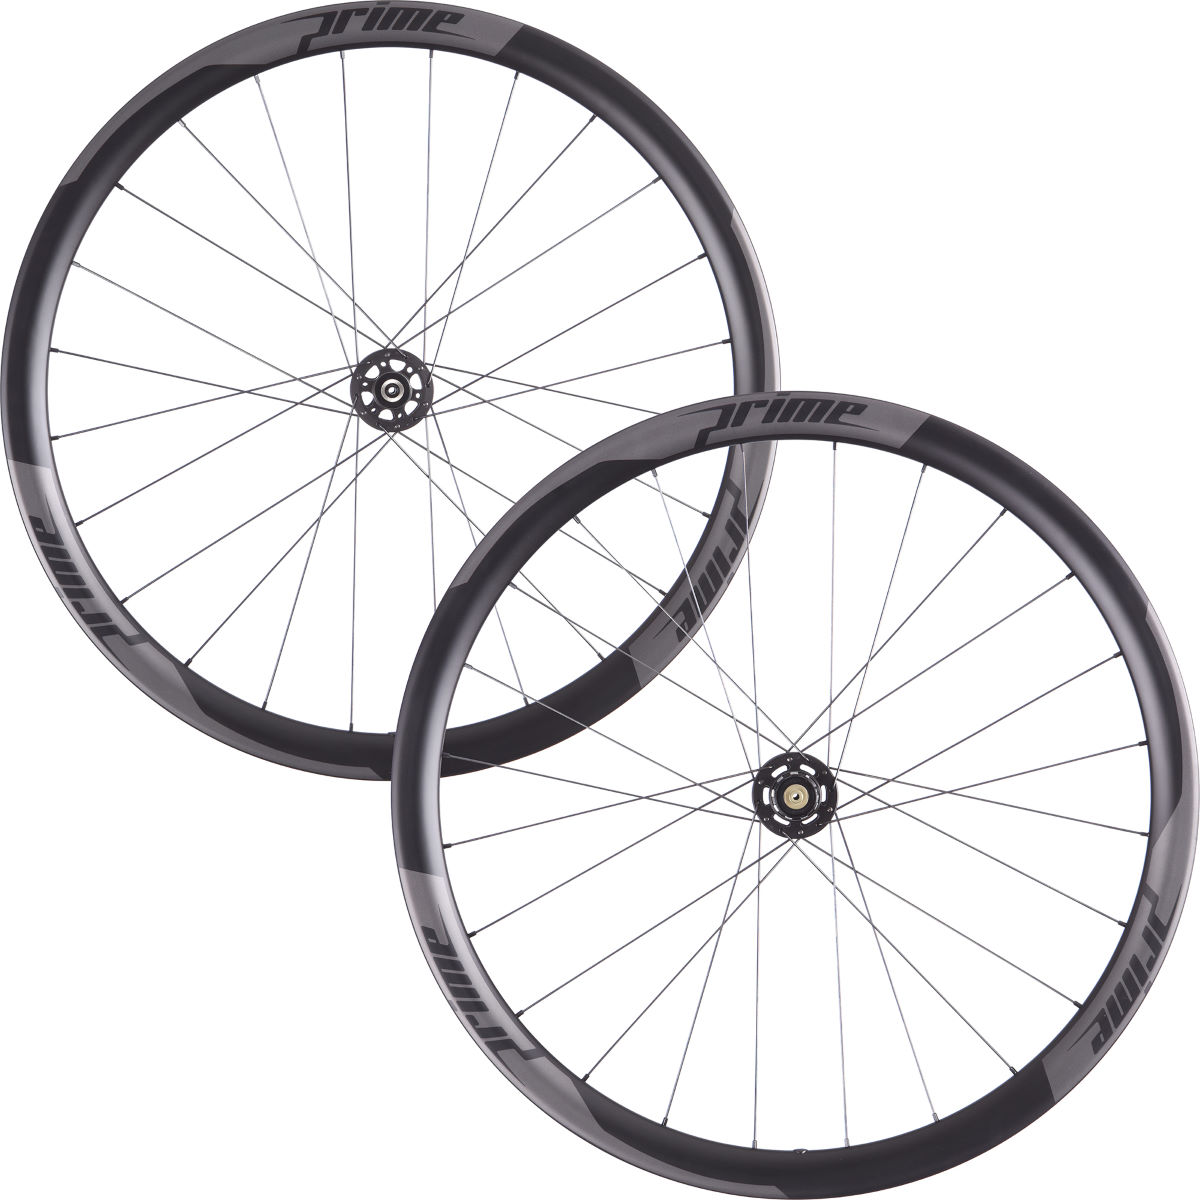 Prime RR-38 Carbon Clincher Disc Road Wheelset - 700c Shimano/SRAM Black Decal Roues performance